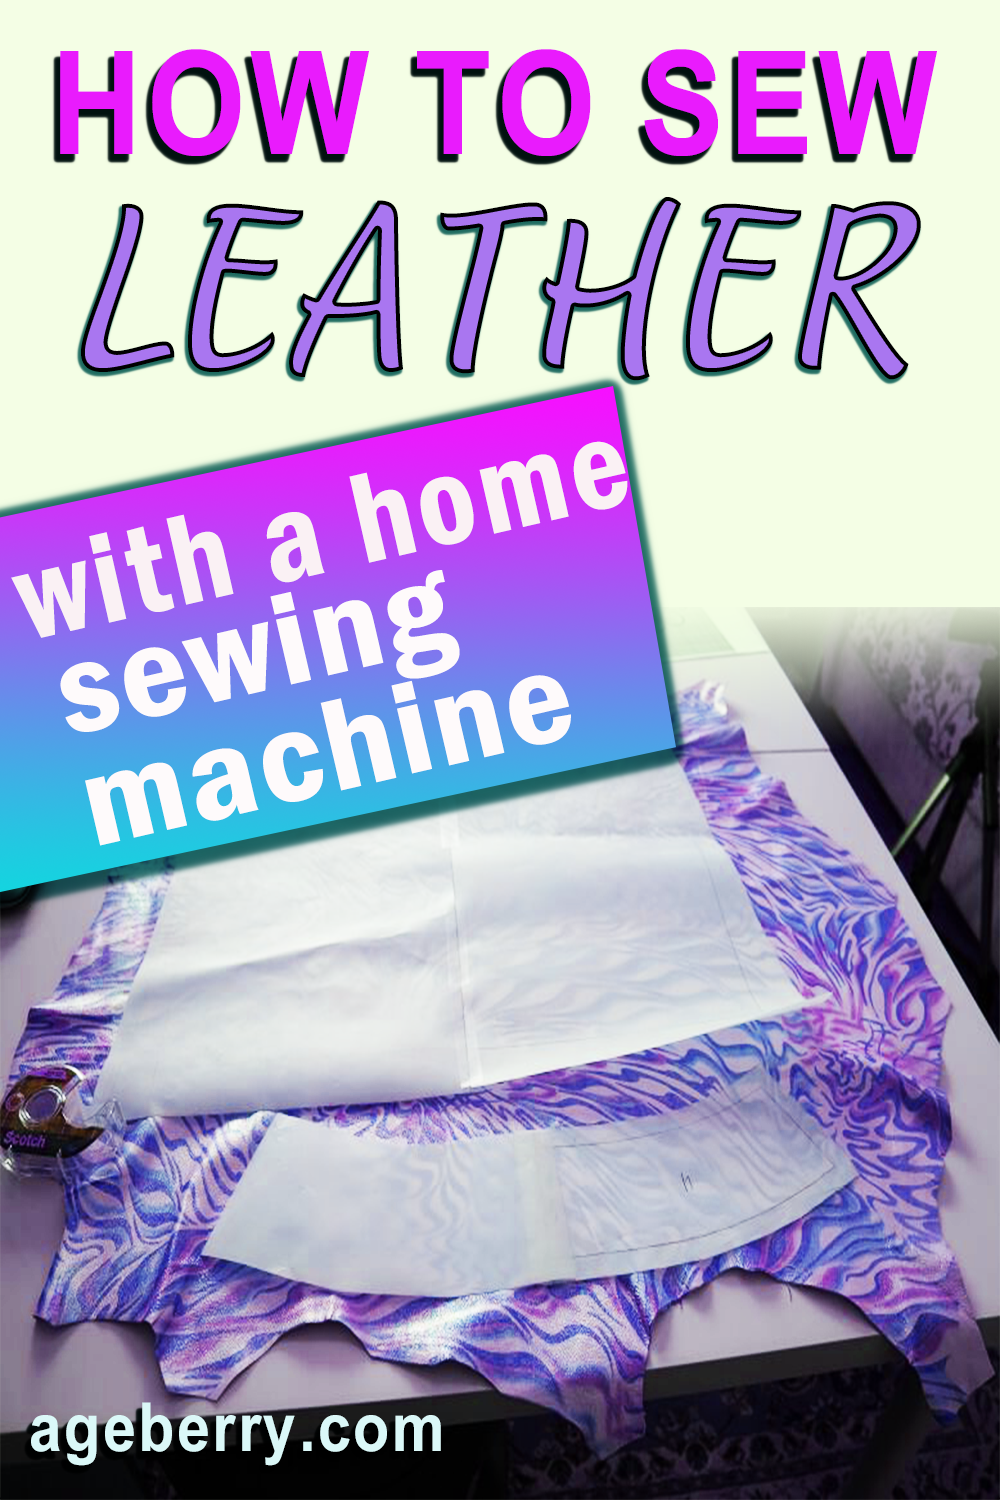 How to sew leather with a home sewing machine - handy sewing tips